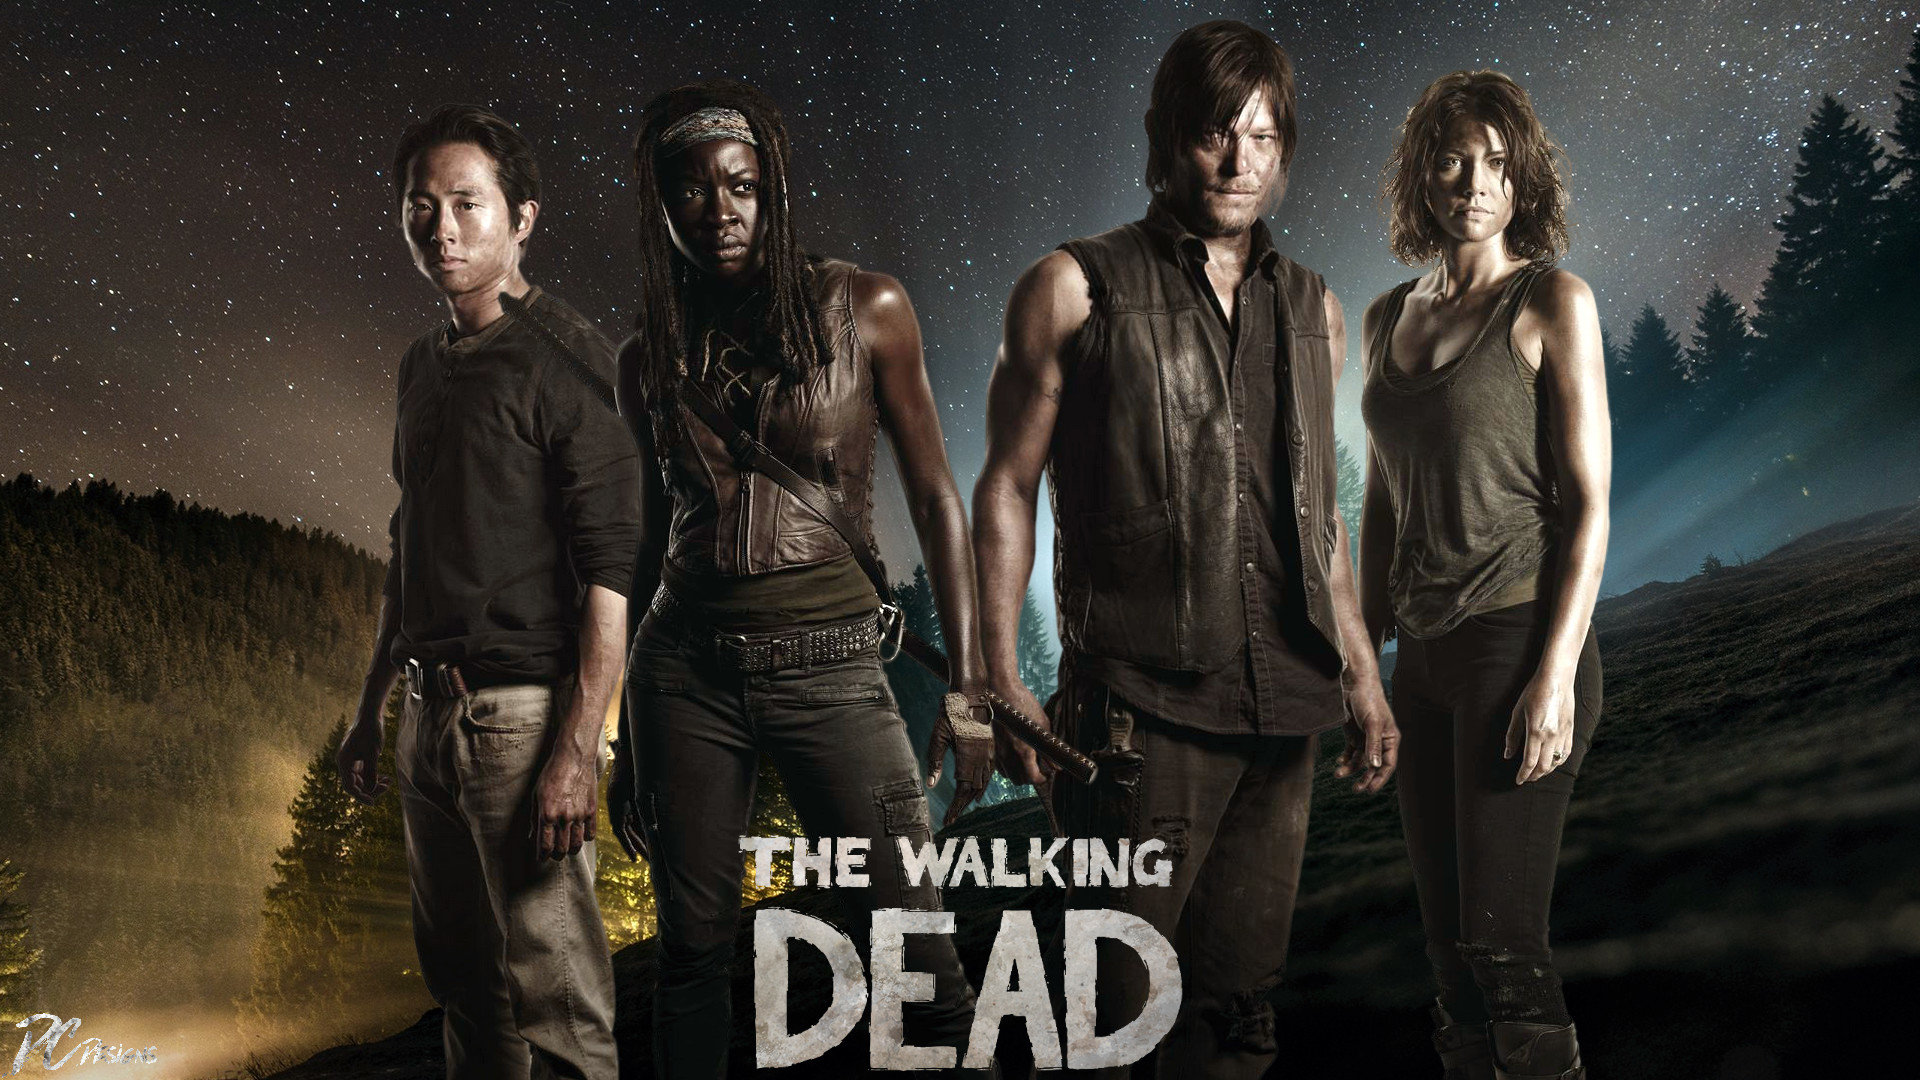 The Walking Dead Wallpapers 1920x1080 Full Hd 1080p Desktop